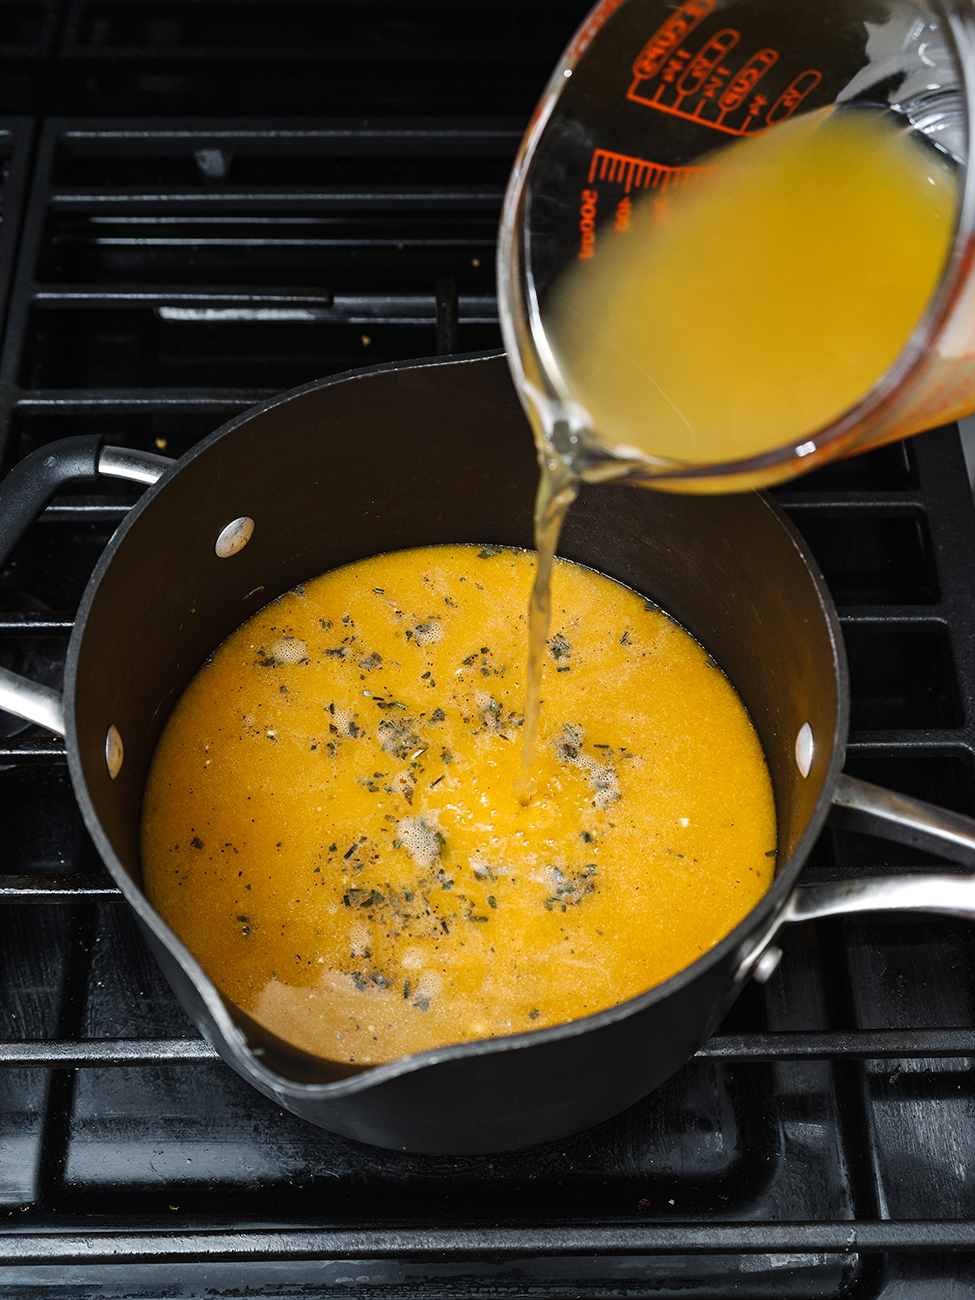 Stock being poured into a pan on the stovetop